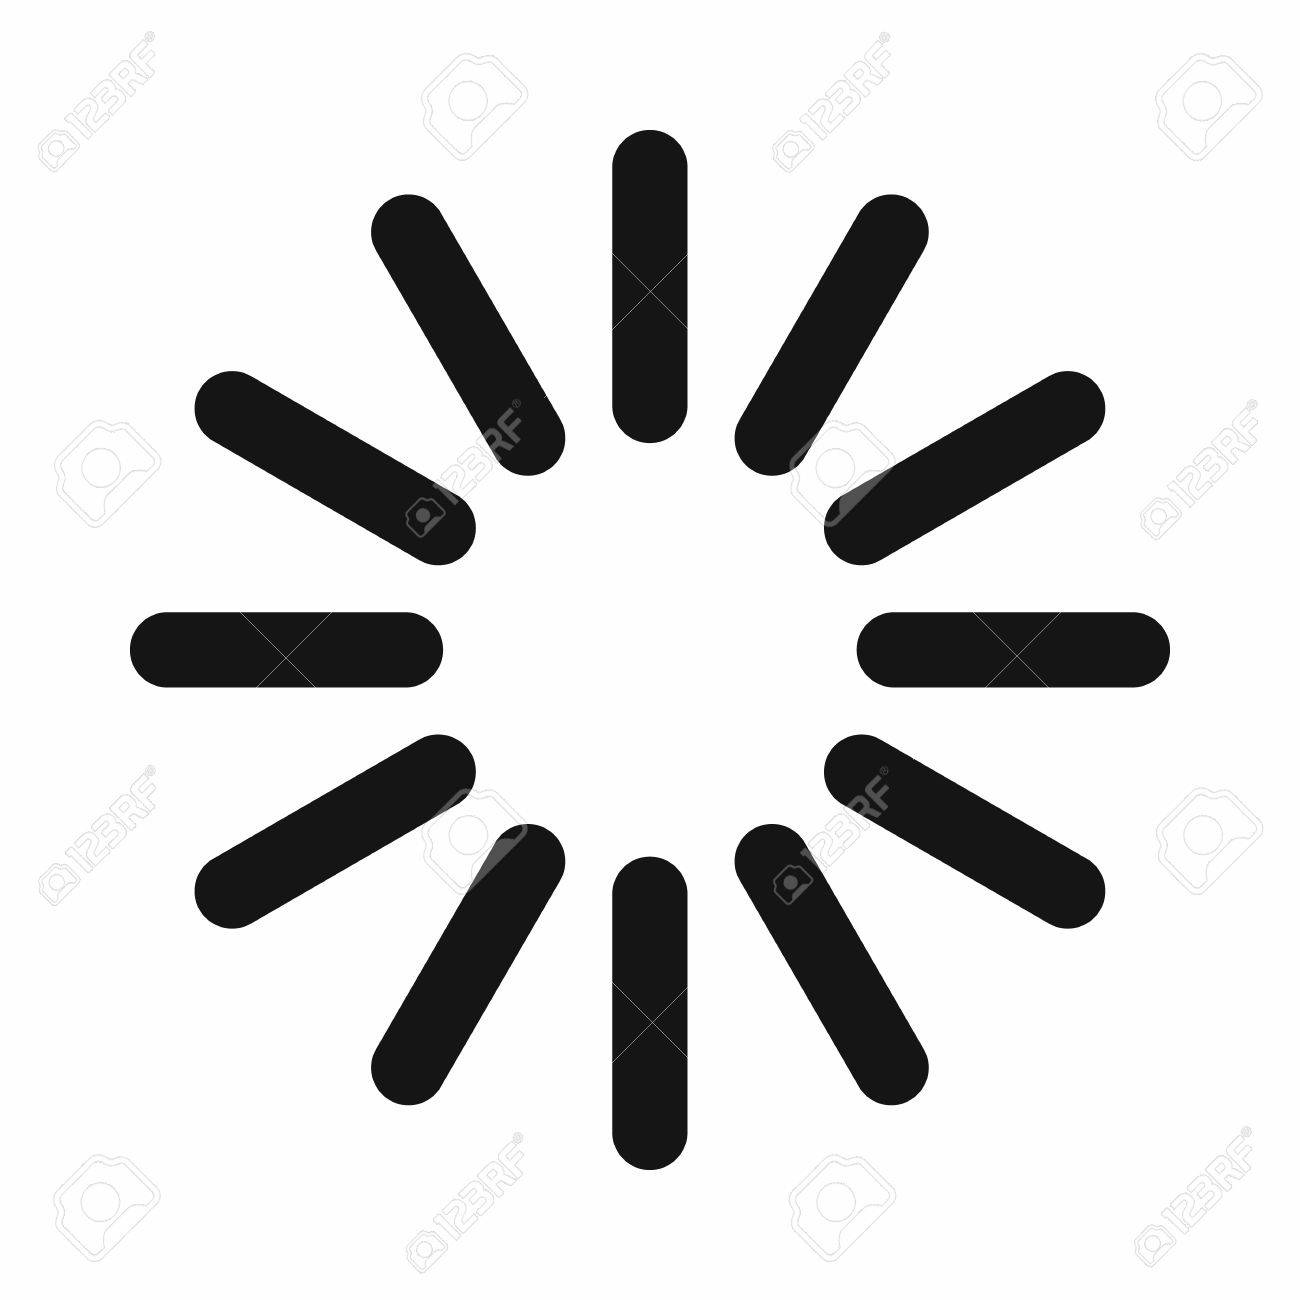 Sign waiting download icon in simple style isolated on white sign waiting download icon in simple style isolated on white background loading symbol stock vector biocorpaavc Image collections